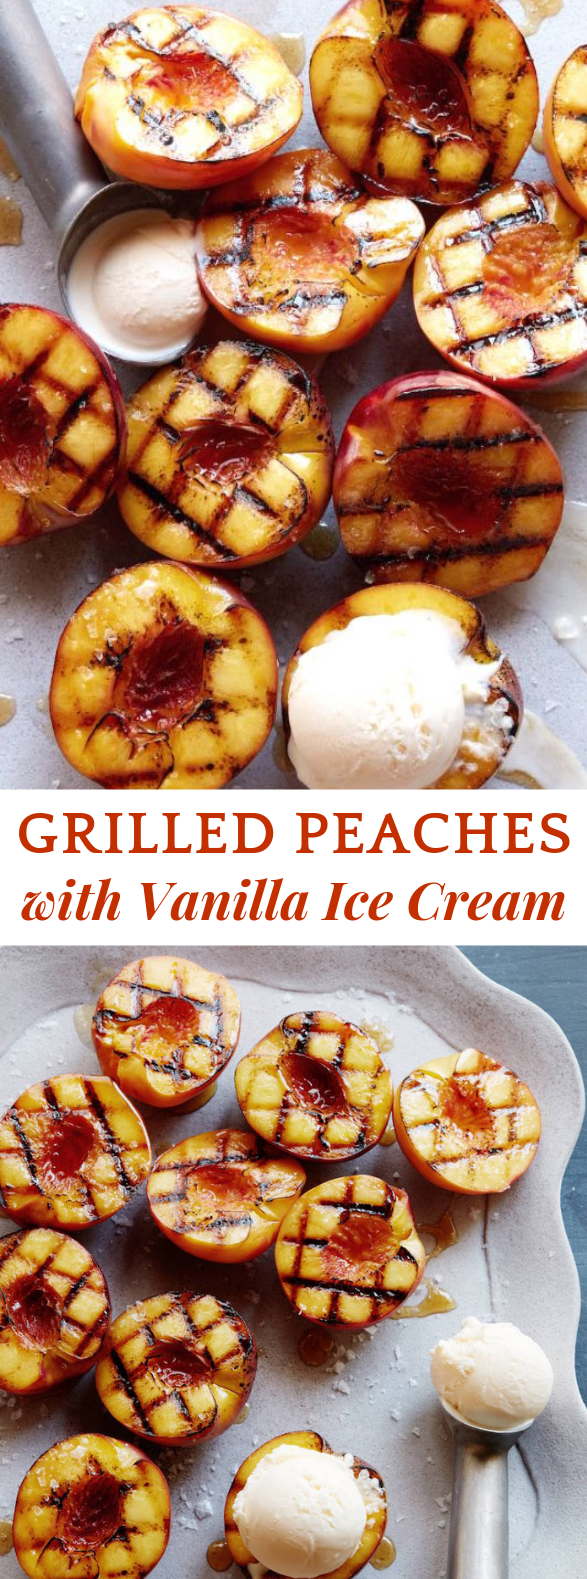 GRILLED PEACHES WITH VANILLA ICE CREAM #Dessert #Cinnamon